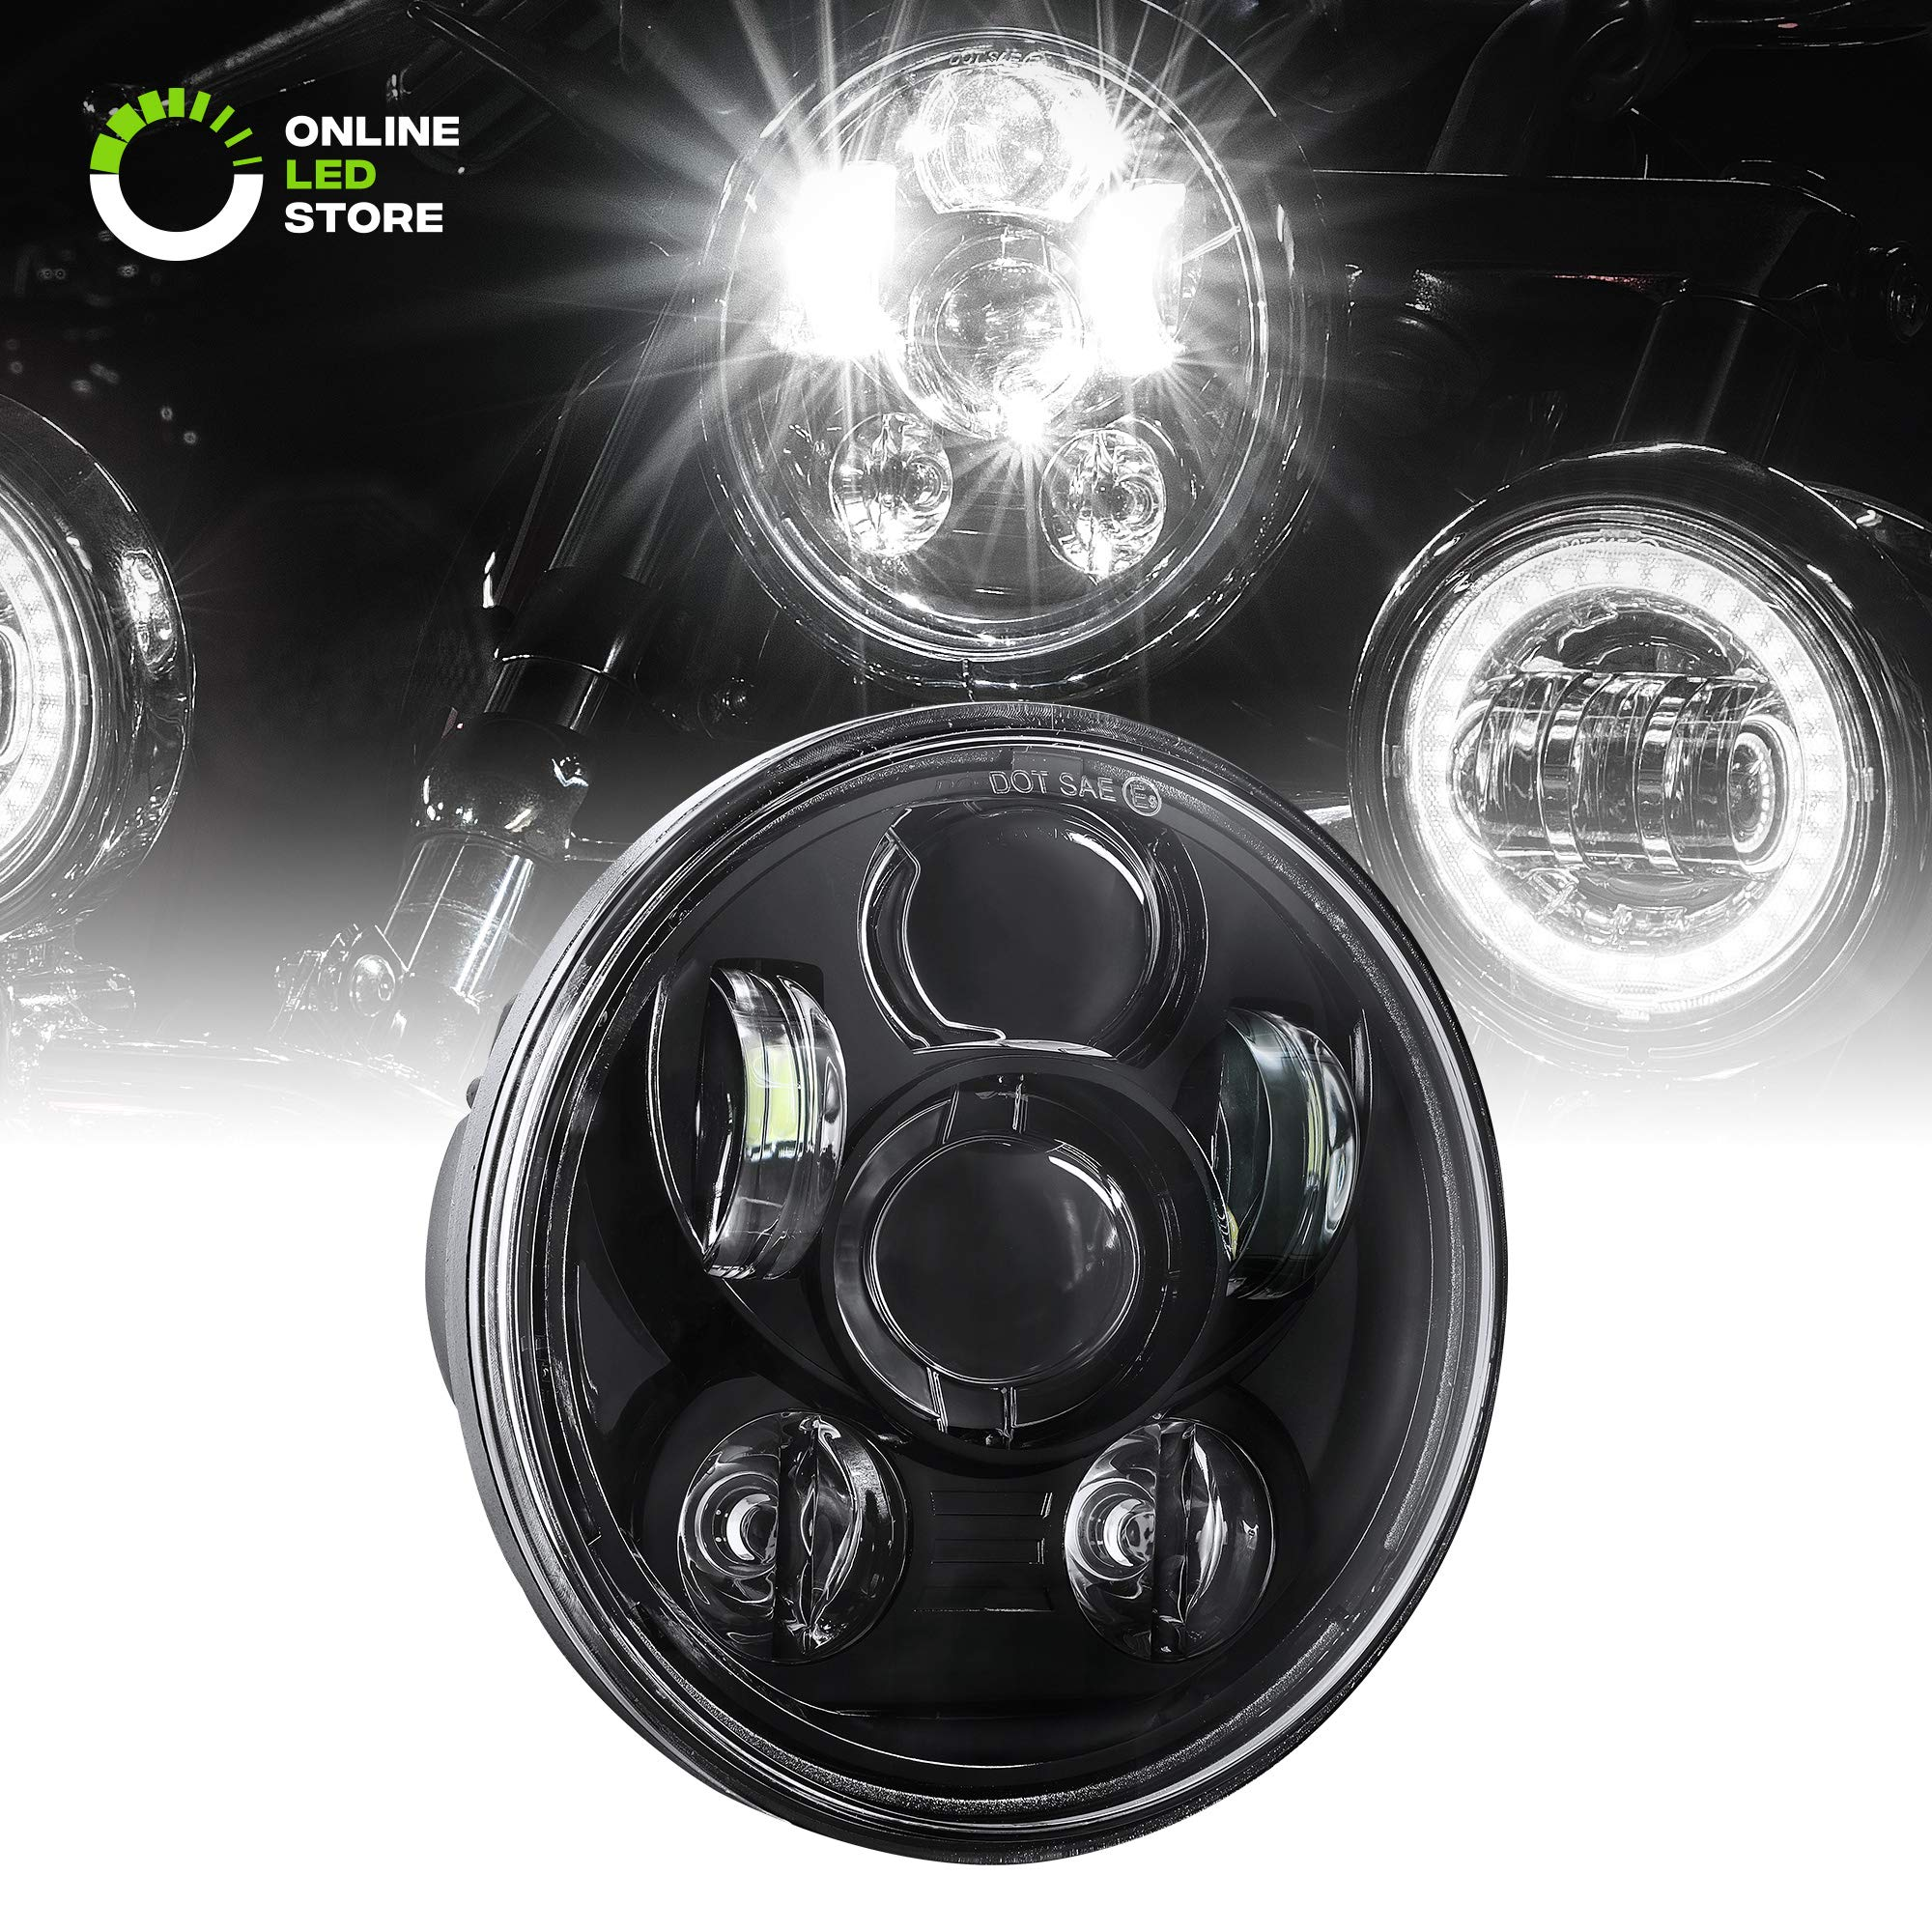 5.75'' Round LED Headlight [Black Housing] [Projector] [3450 Lumens] for Harley Davidson Motorcycle by ONLINE LED STORE